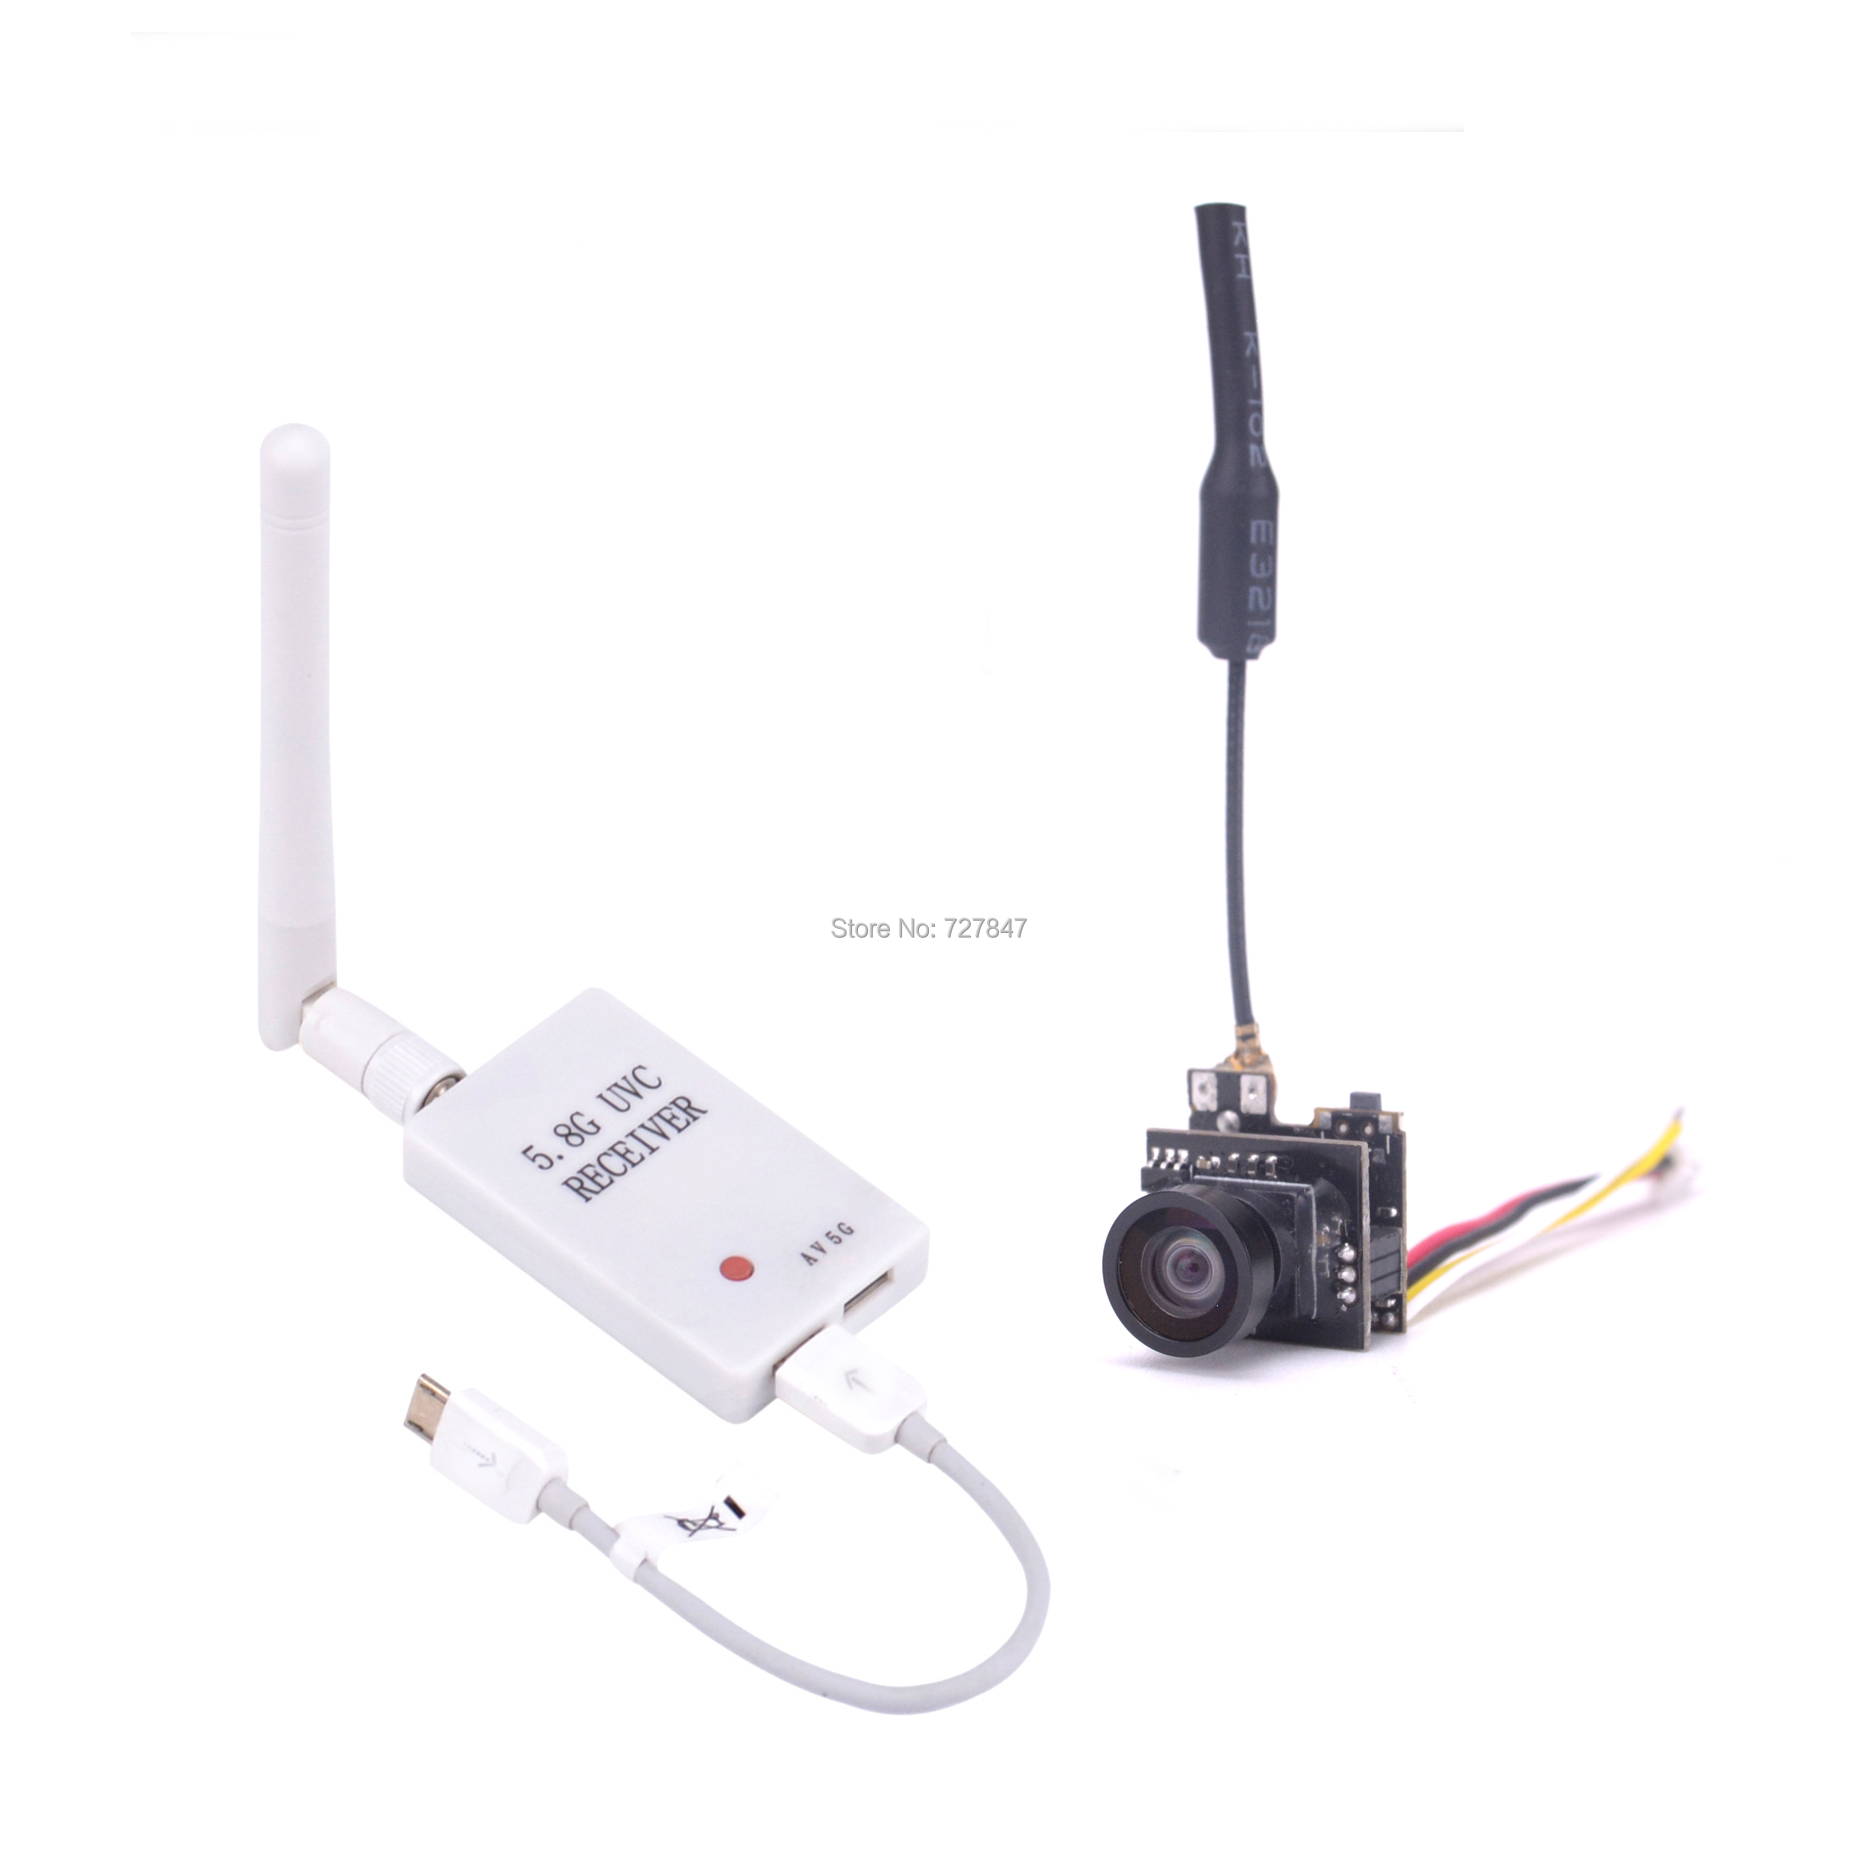 Mini 5.8G FPV Receiver UVC Video Downlink OTG VR + LST-S2 5.8G 800TVL / 48CH 25MW VTX 1000TVL FPV Camera Built-in Transmitter